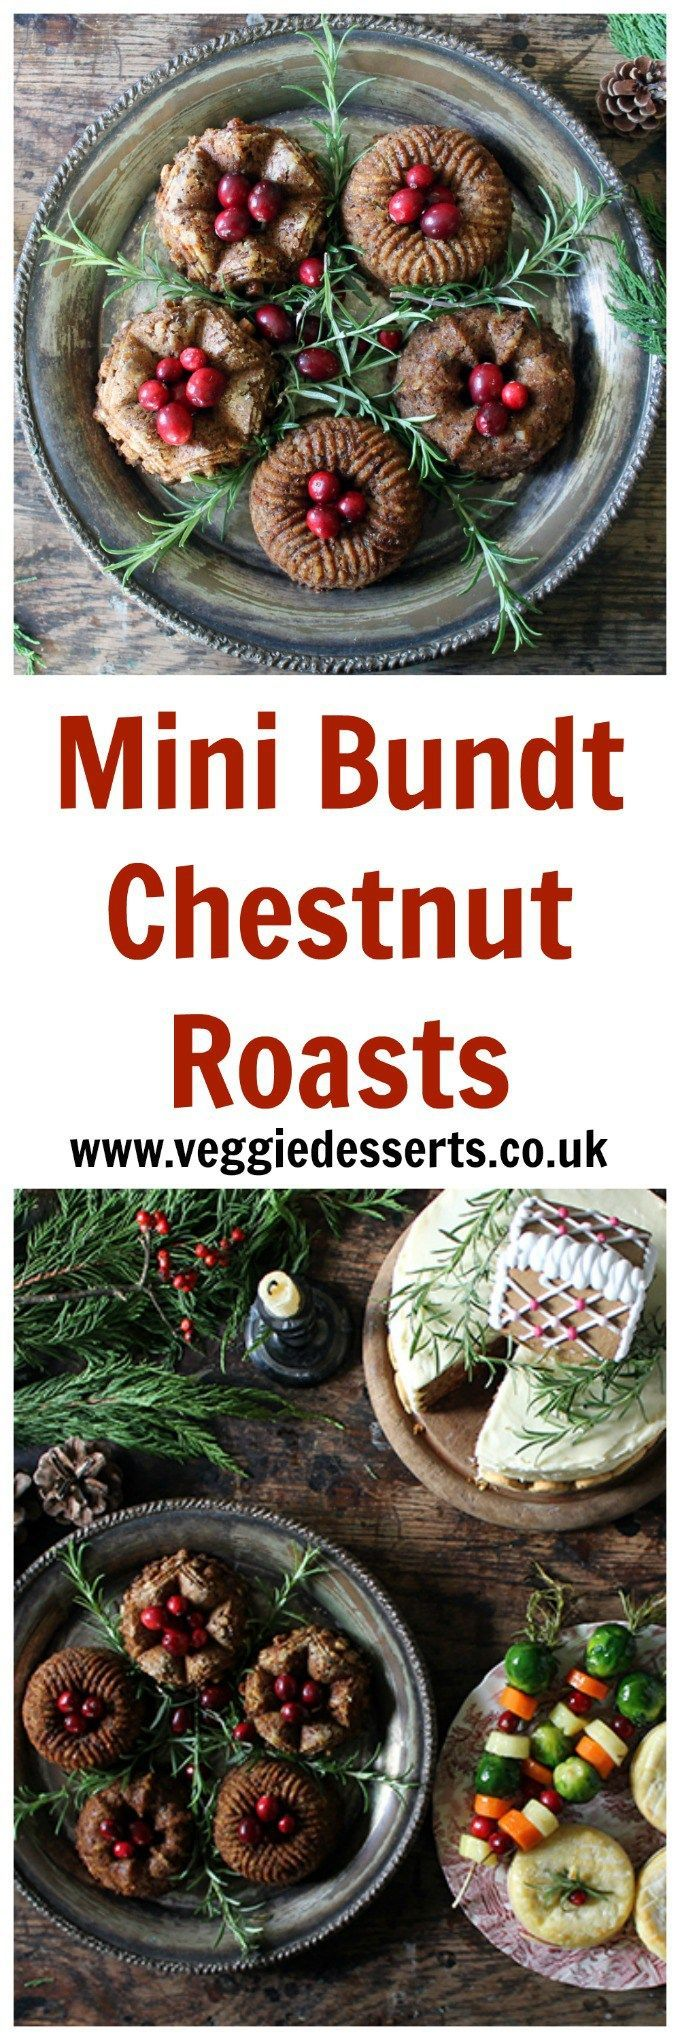 Mini Bundt Chestnut Roasts with Sage Gravy | Veggie Desserts Blog Mini Bundt Chestnut Roasts with Sage Gravy are a wonderful vegetarian Christmas main! Get the recipes for my three-course alternative Christmas dinner, including mini baked camemberts and g